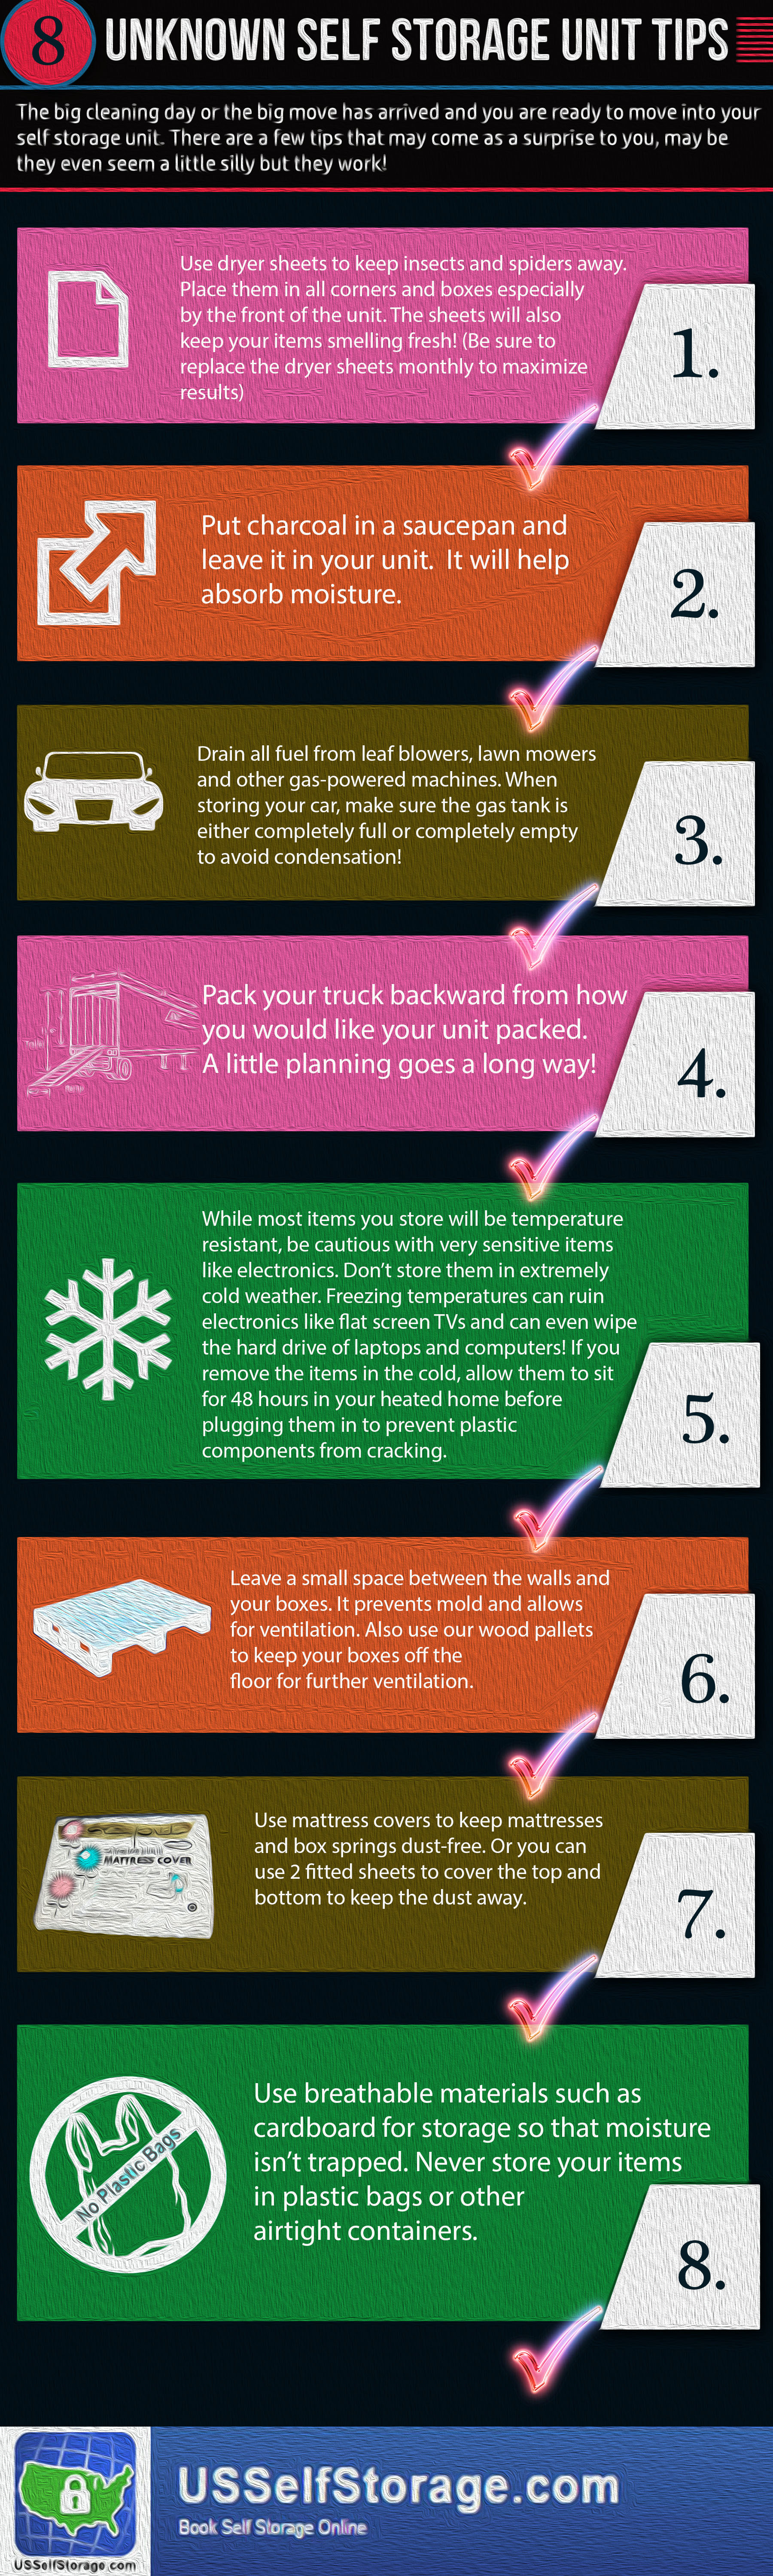 Unknown Self Storage Tips Infographic